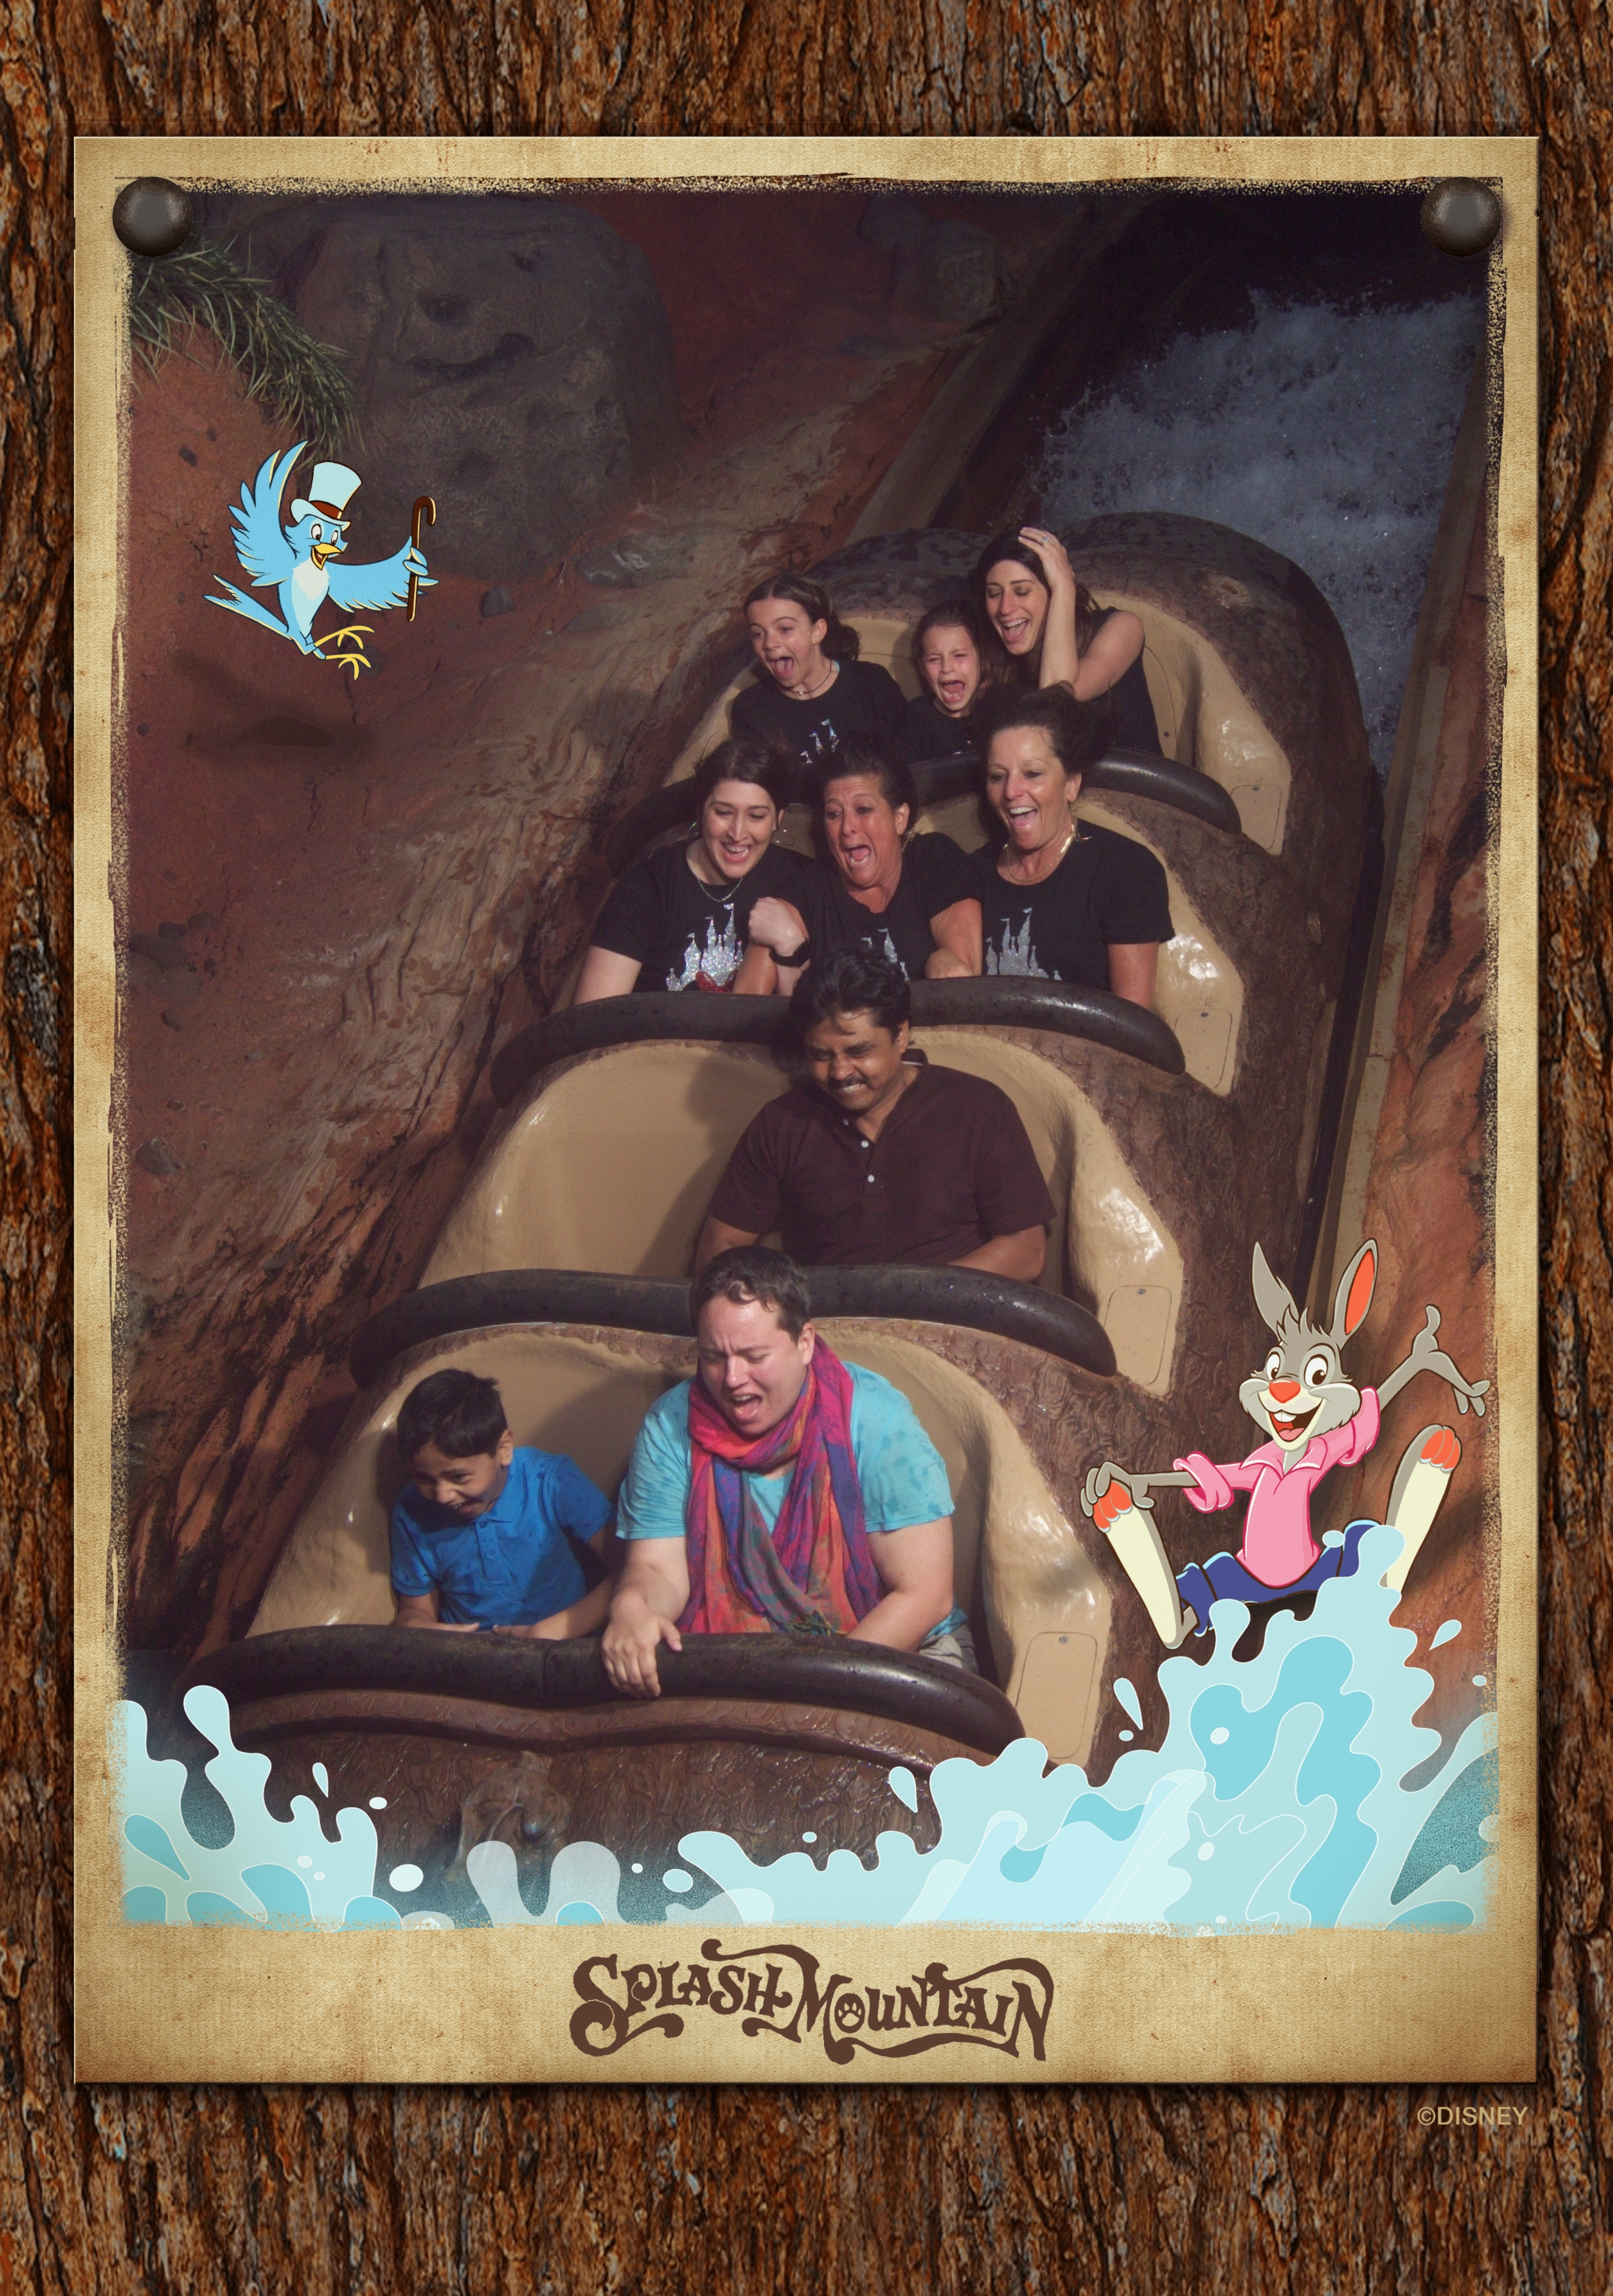 a trip to disney would not be complete without splash mountain!!